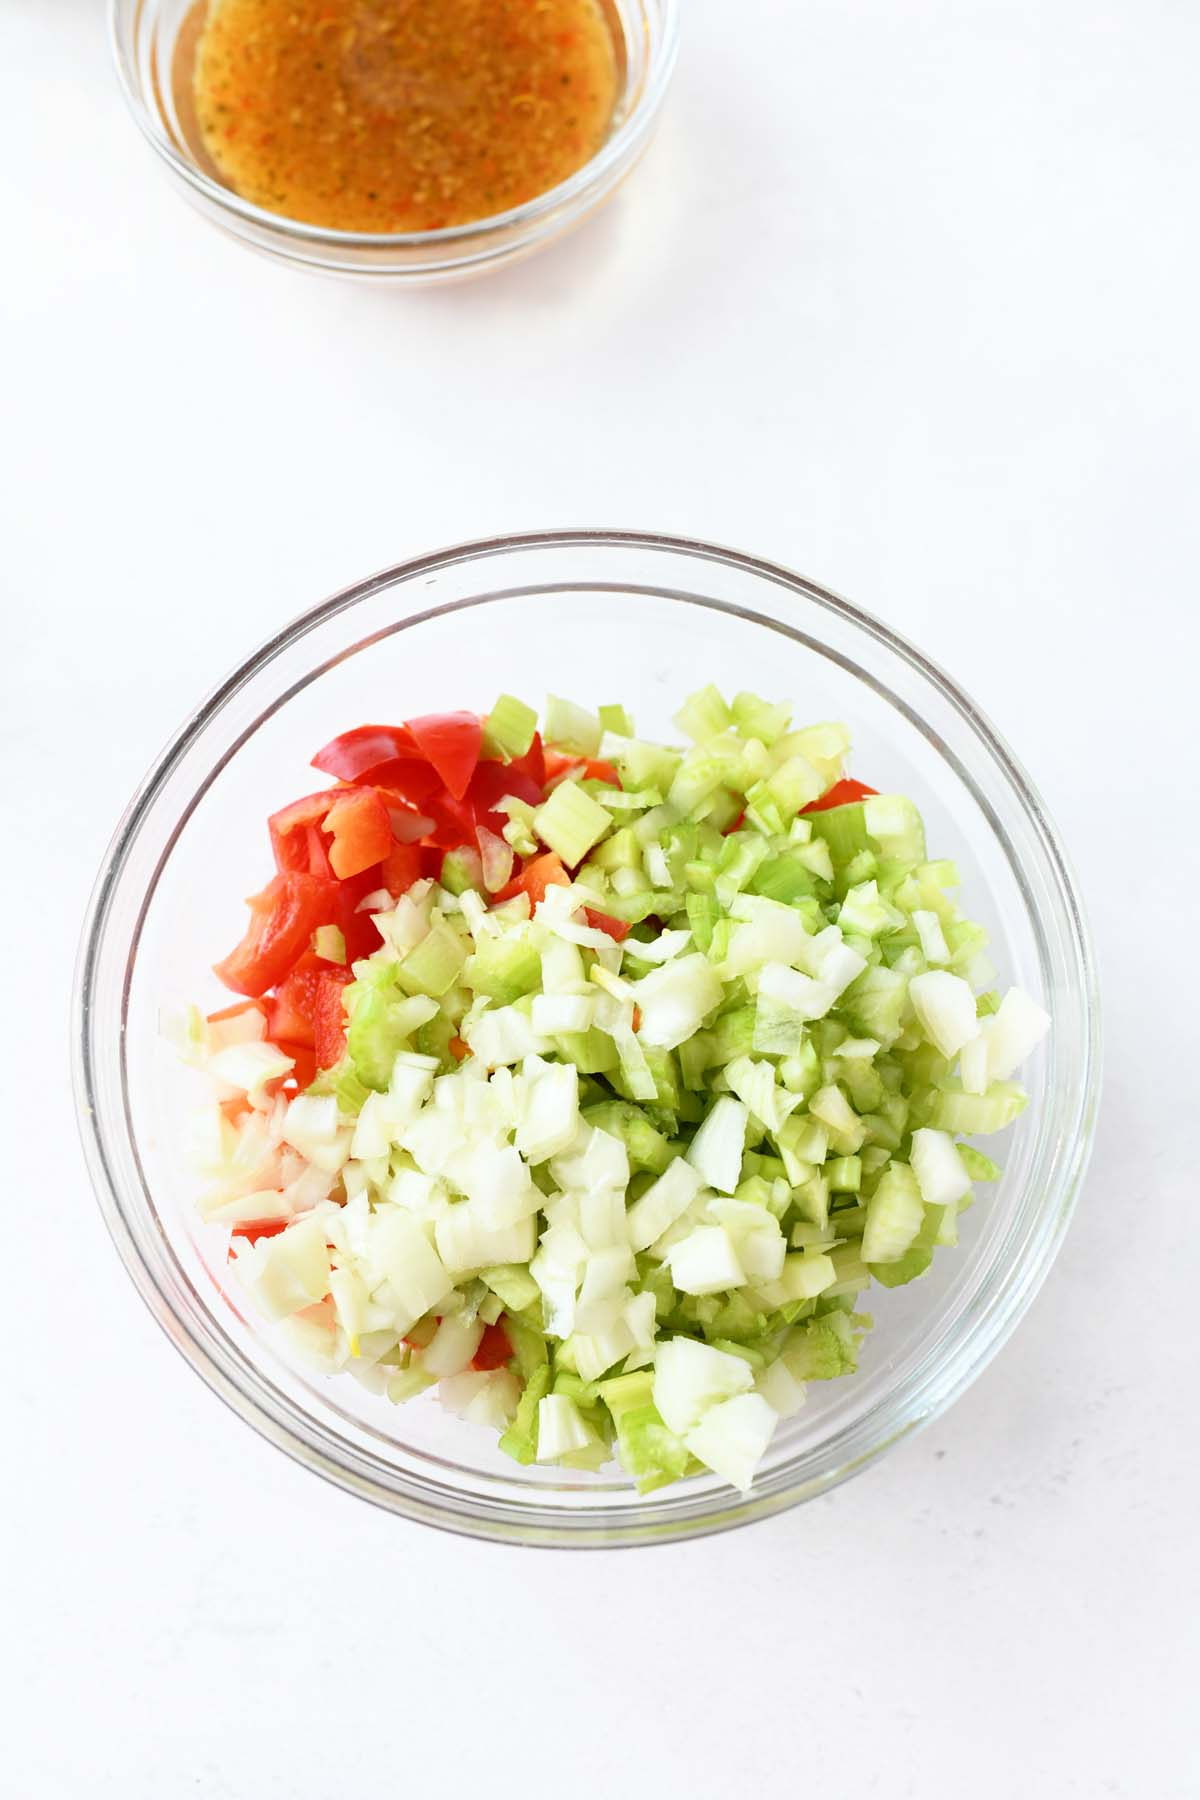 chopped vegetable in a glass bowl.